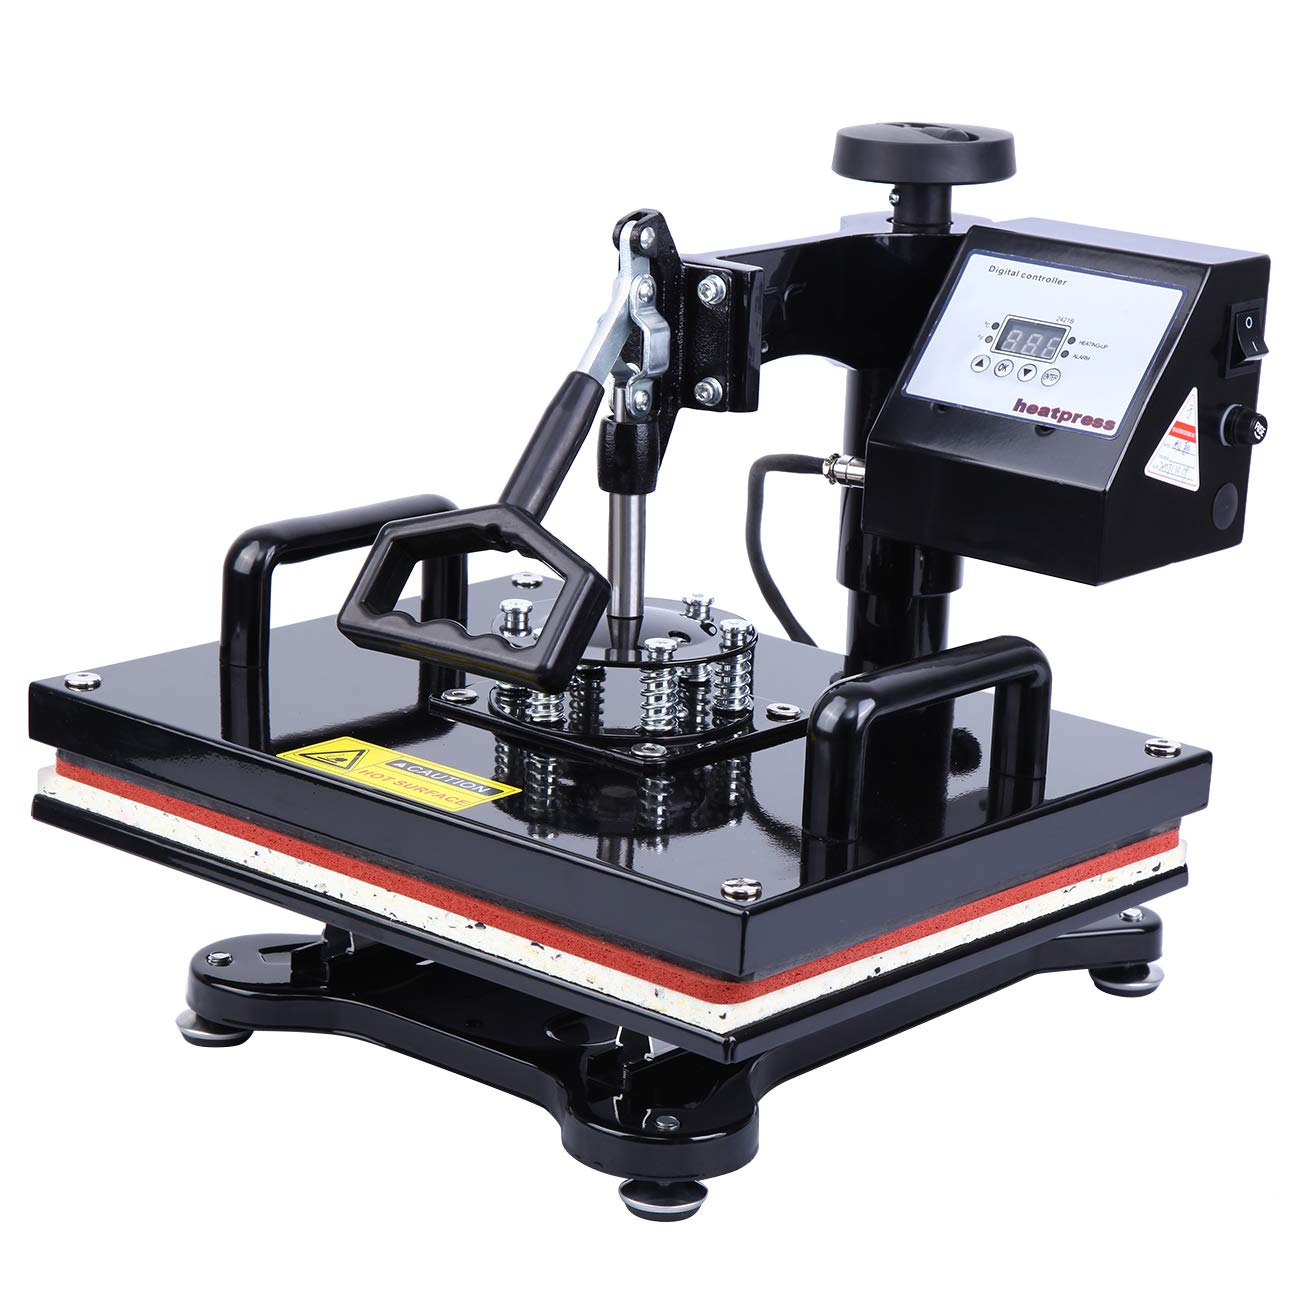 XuanYue Heat Press Machine 12×15 Multifunctional Swing Away Digital Sublimation Heat Pressing Transfer Machine with LCD Display for T Shirt, Hat, Mug, Cap, Plate and More